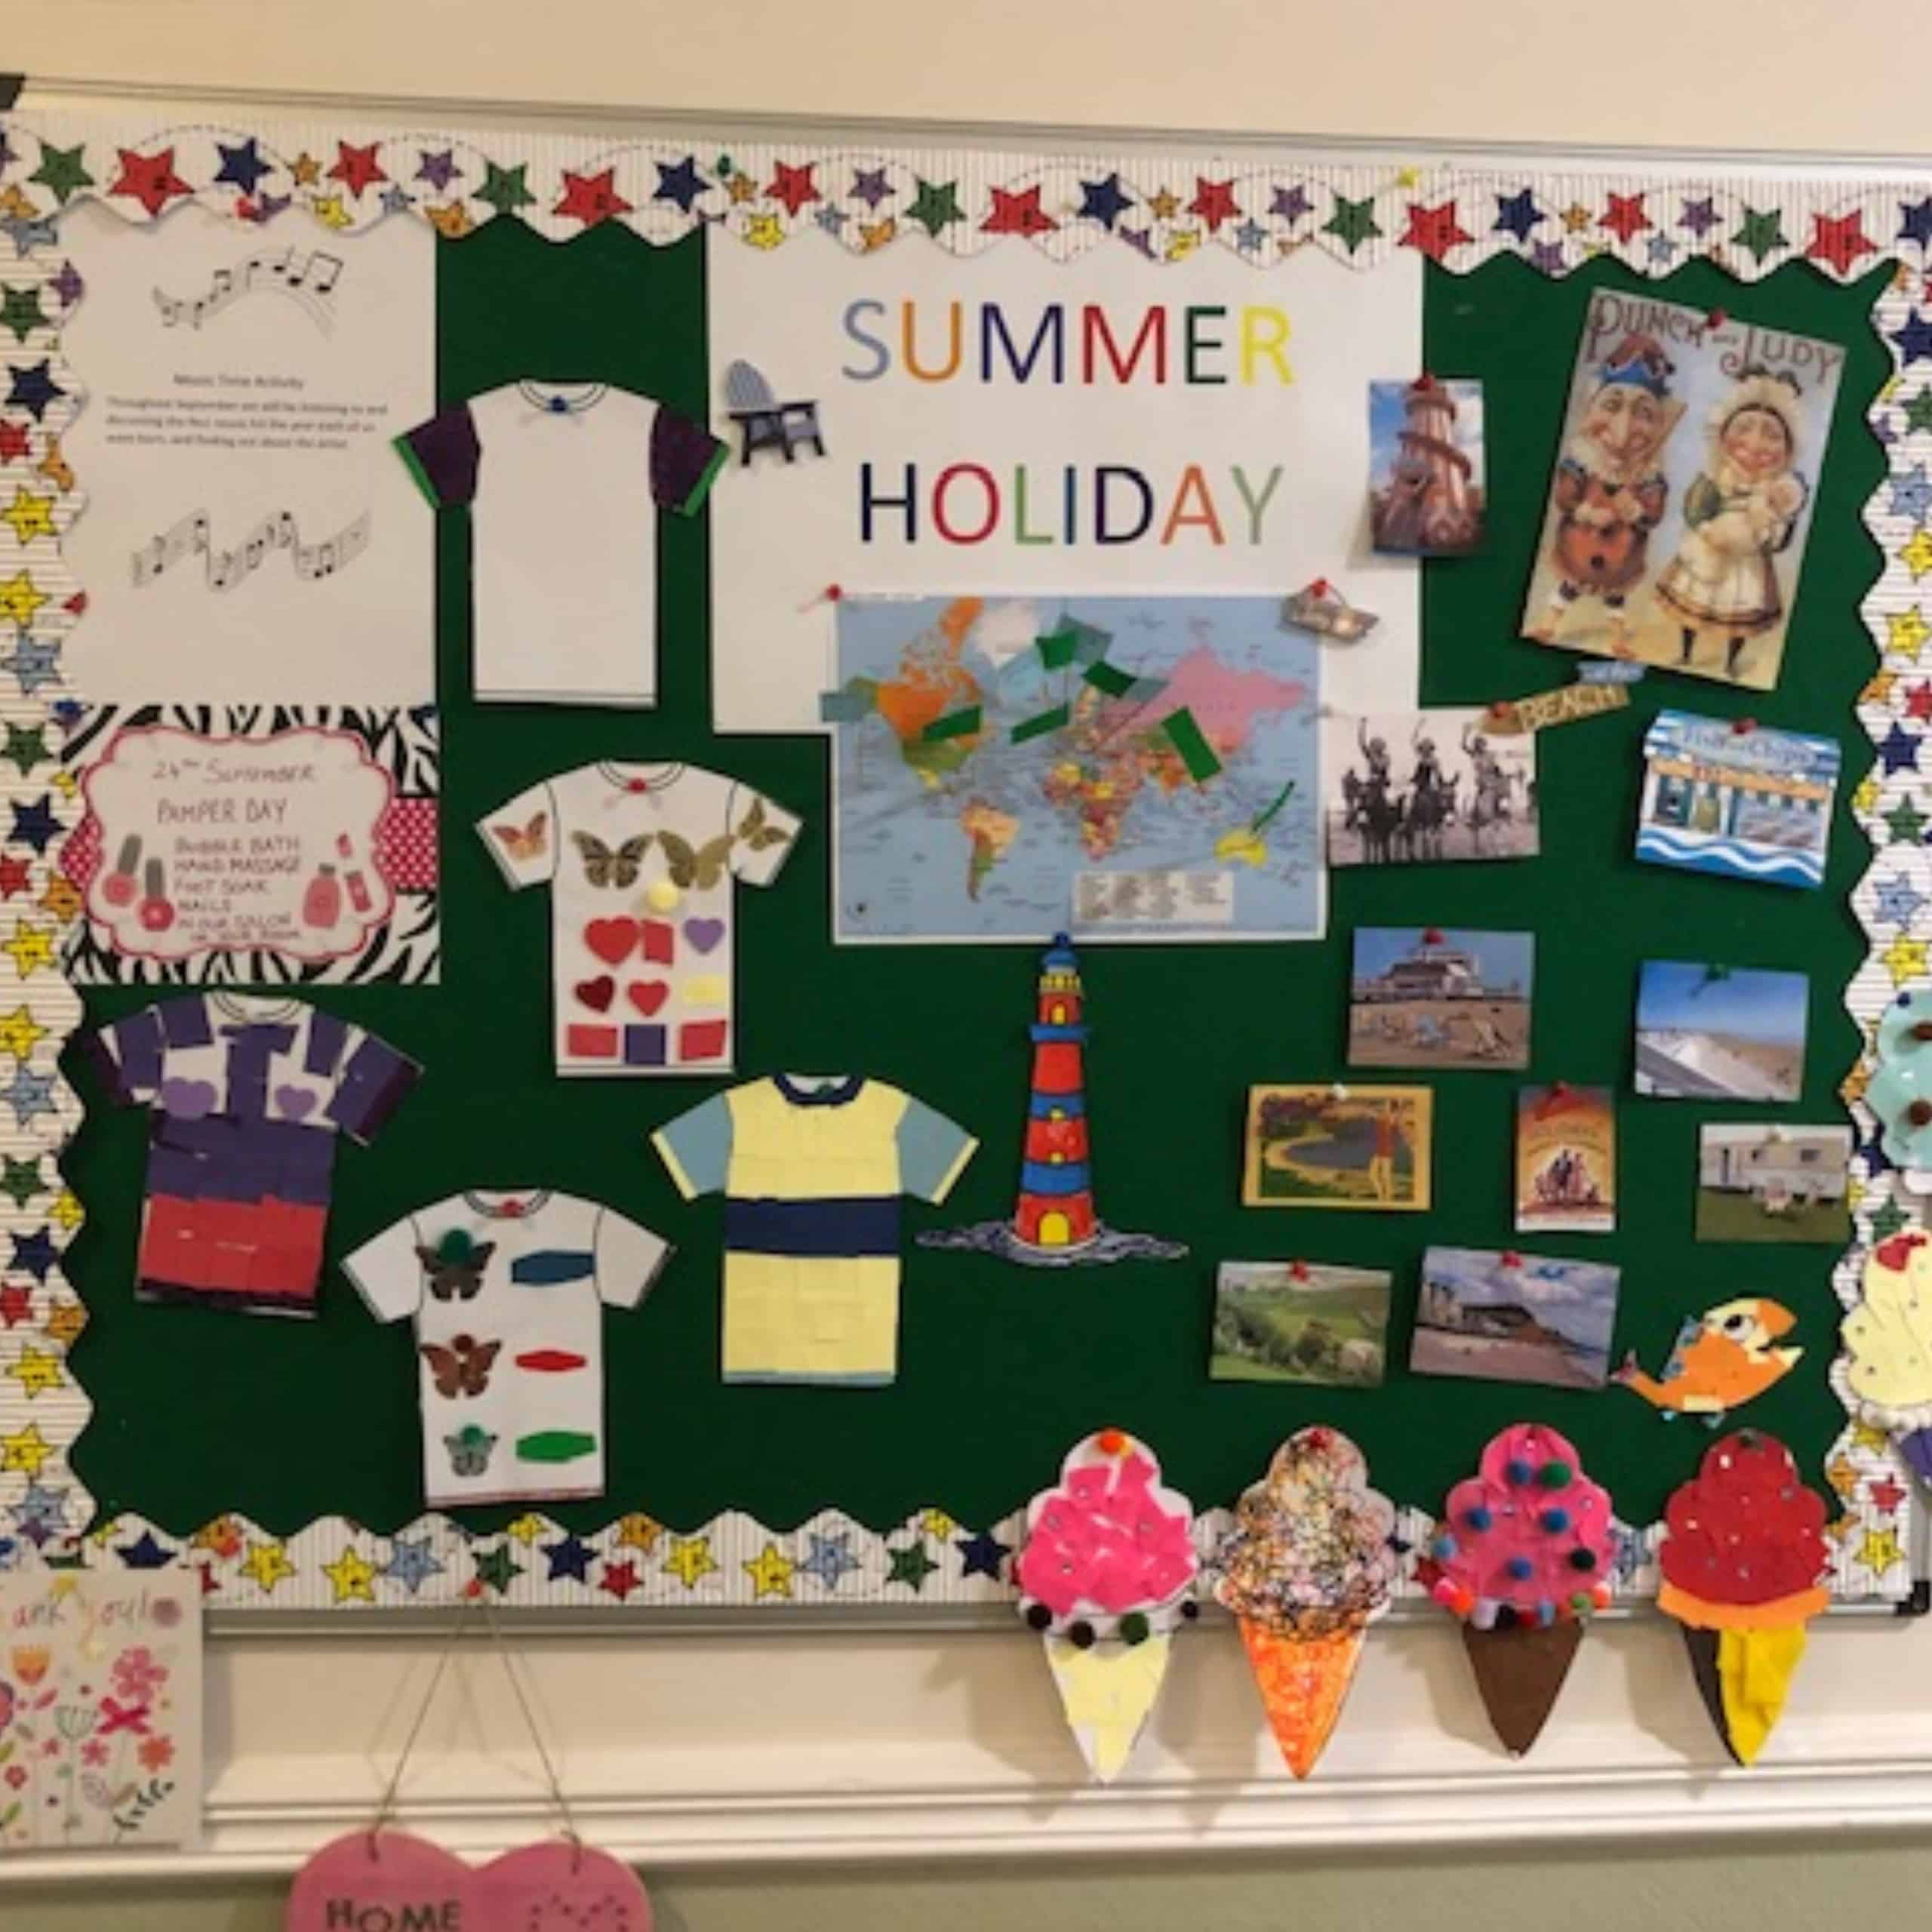 The 'Summer Holiday' memory board at Westerham Place Care Home in Sevenoaks.